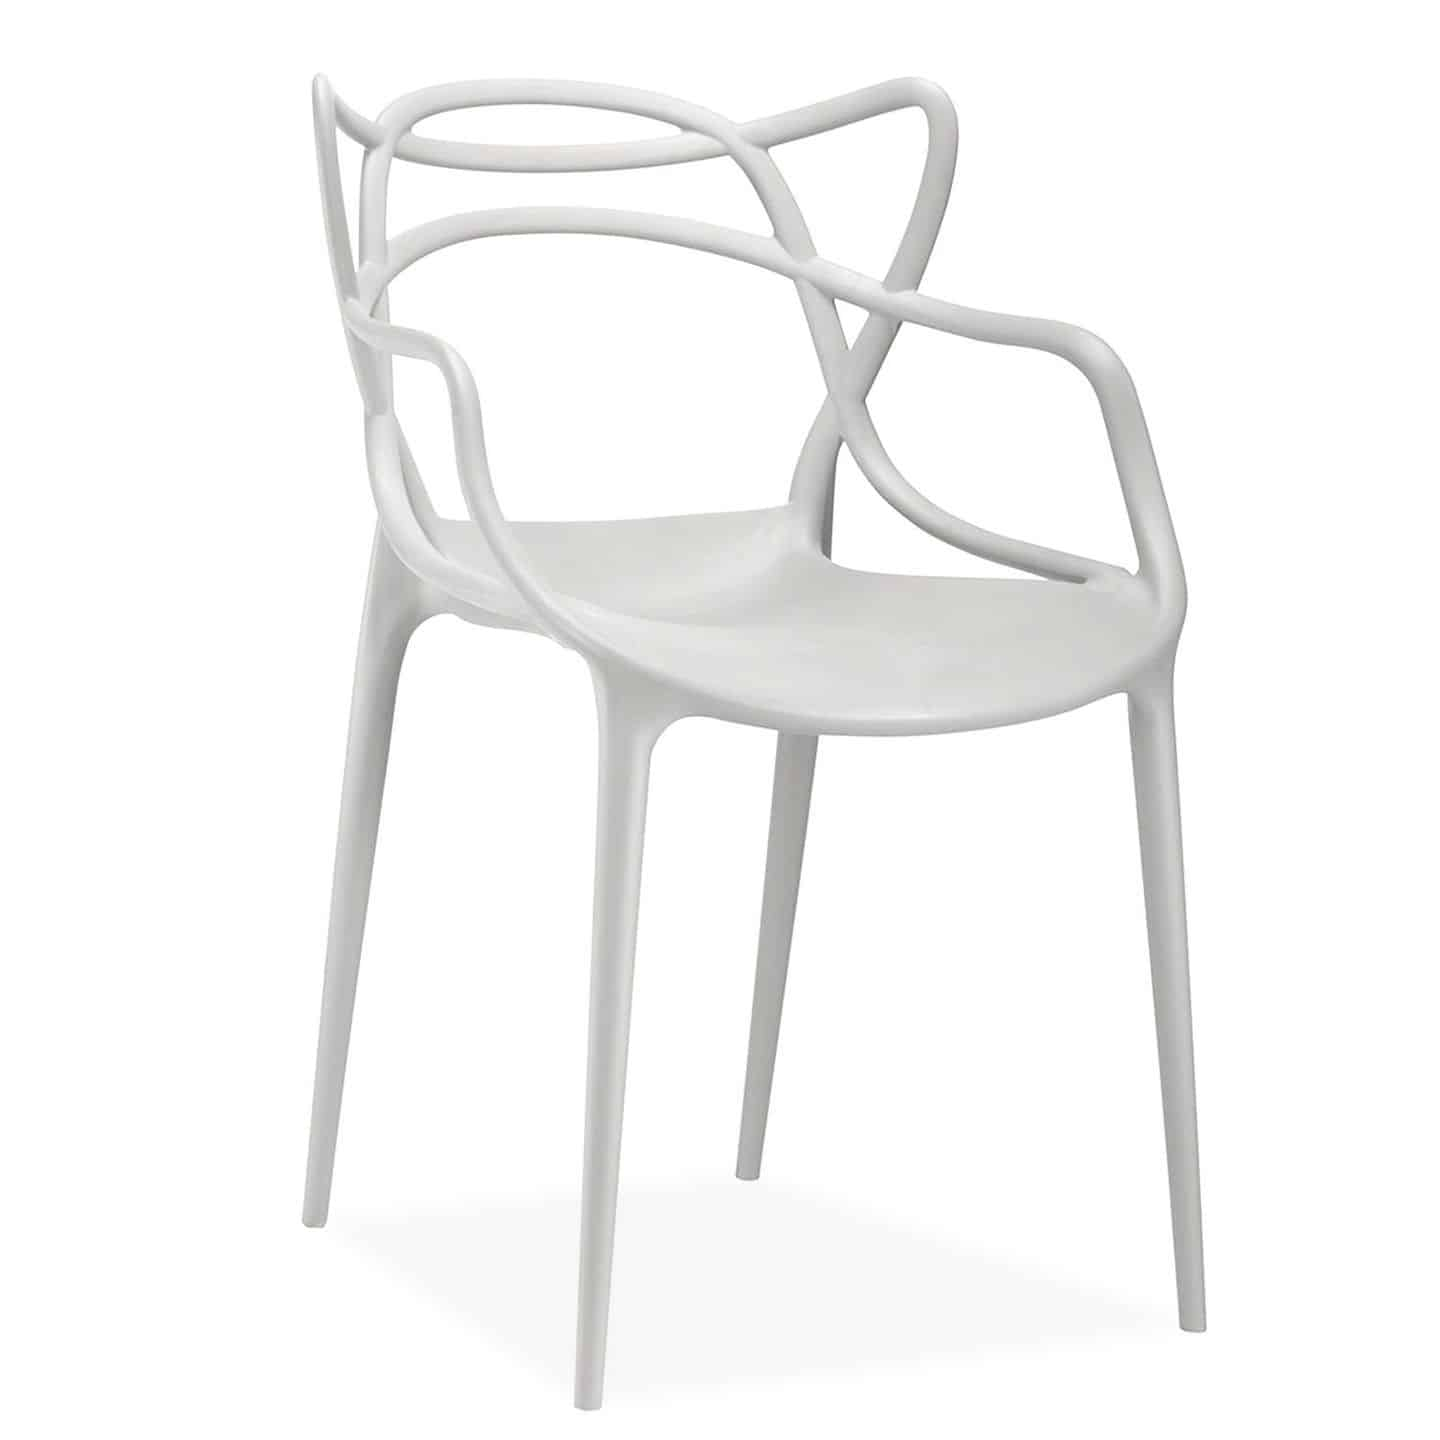 Must Have Dining Chairs Designer And Budget Options